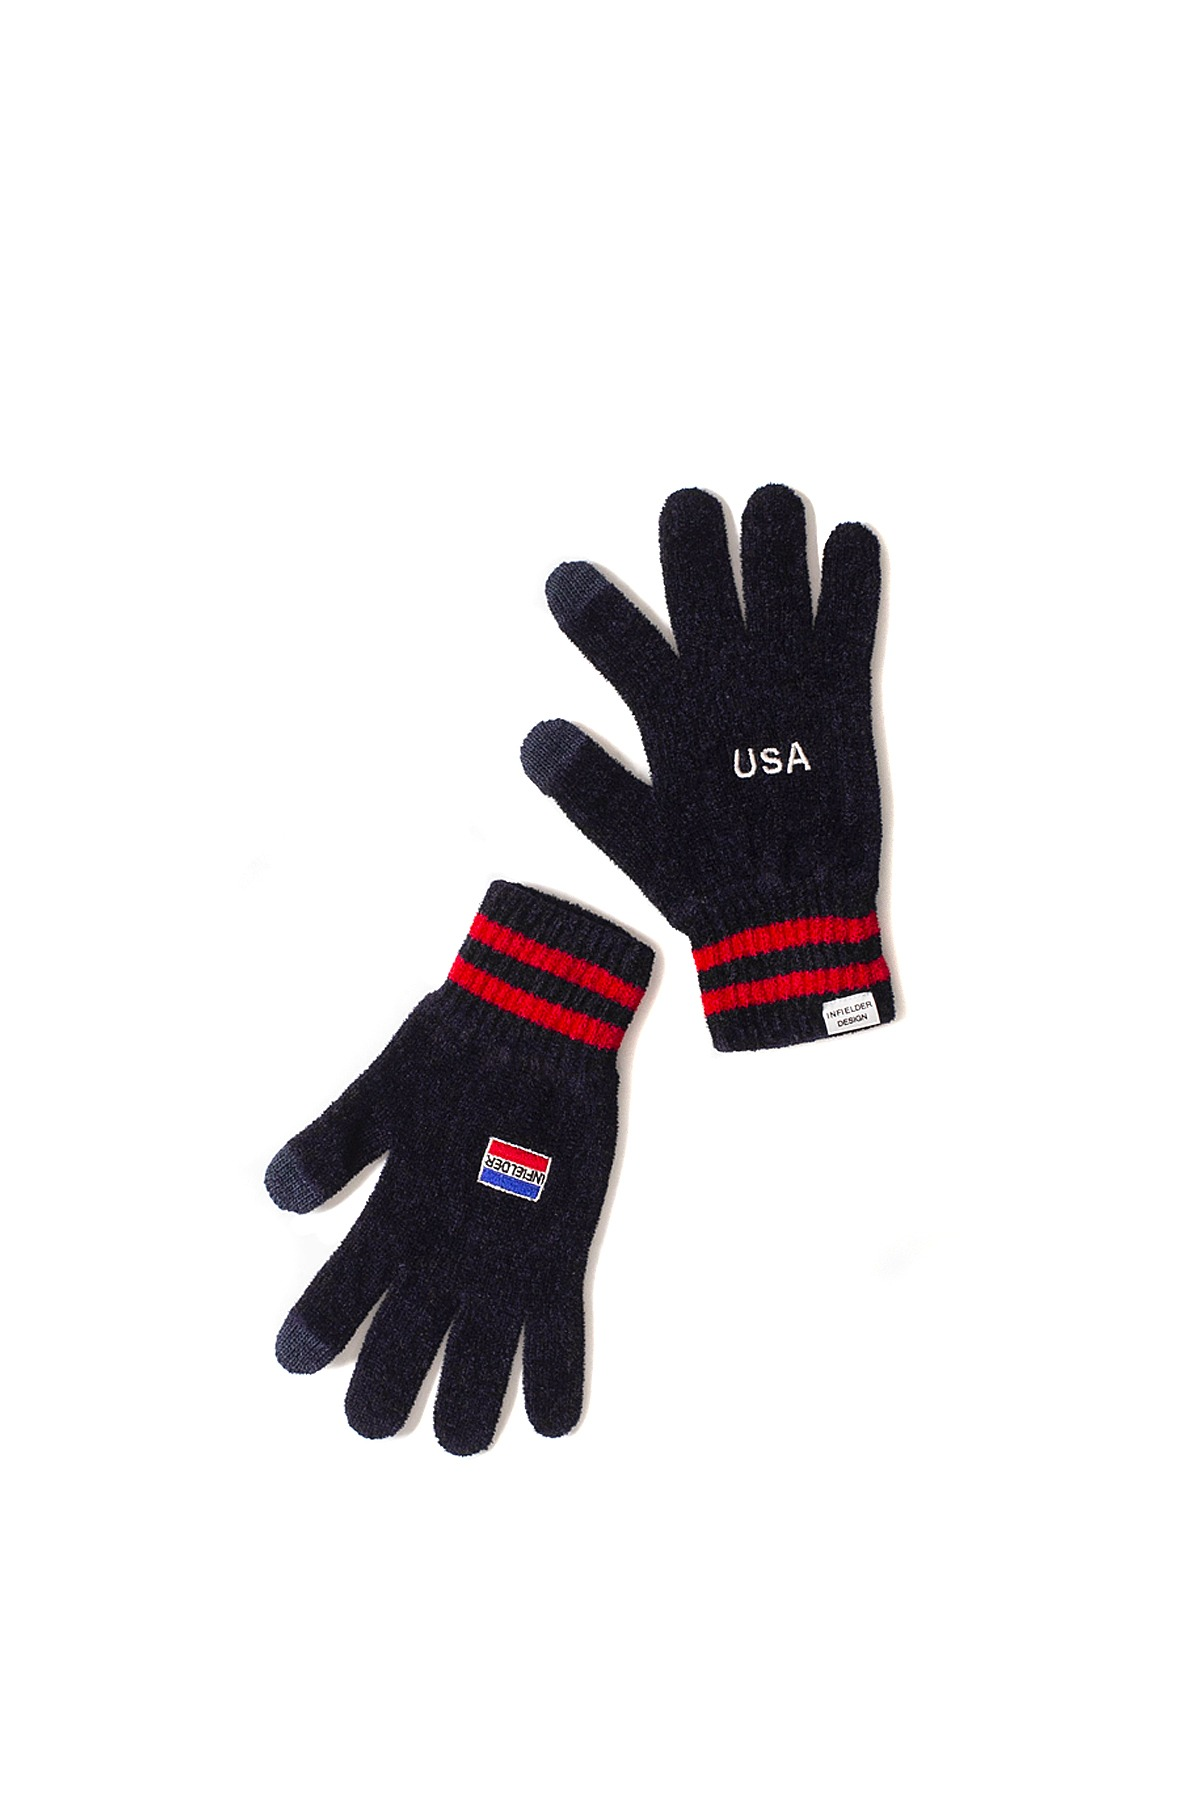 Infielder Design : USA Gloves (Navy)